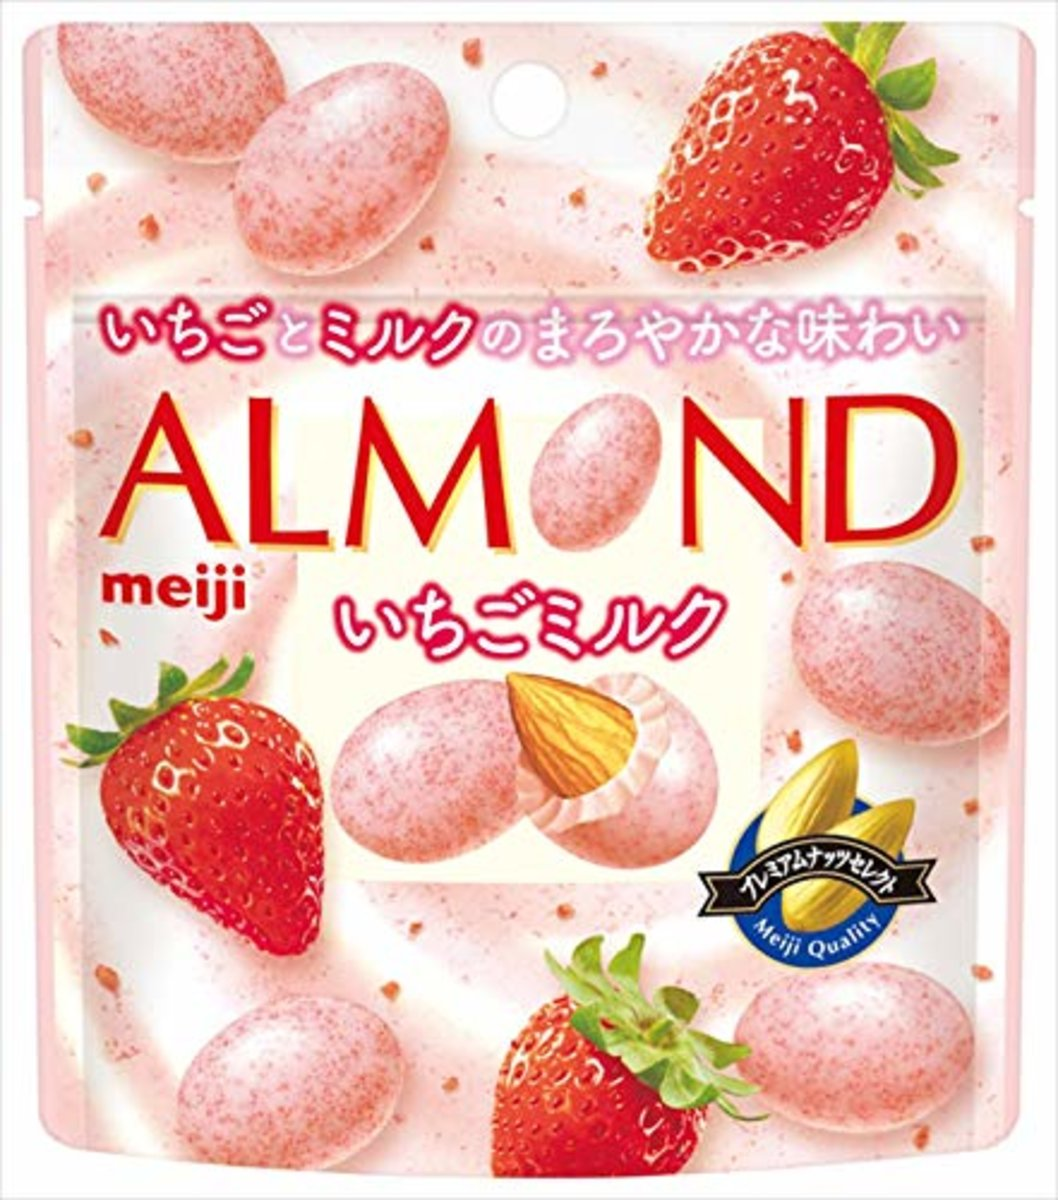 Almond chocolate strawberry milk bag 47g